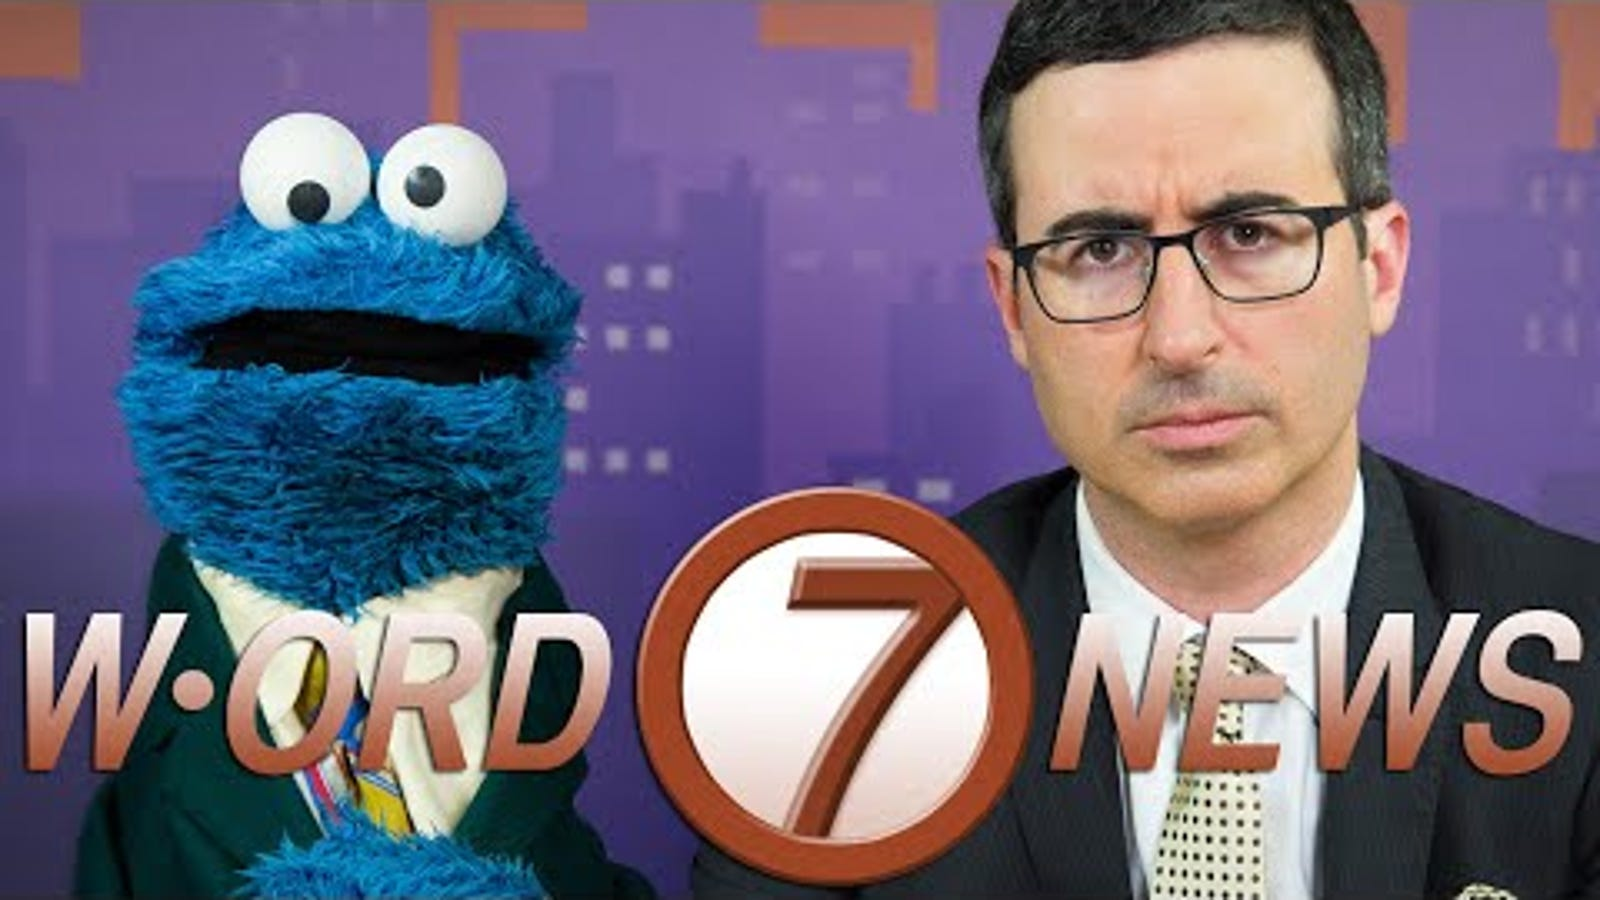 Cookie Monster And John Oliver Should Be Everyone's TV News Reporters